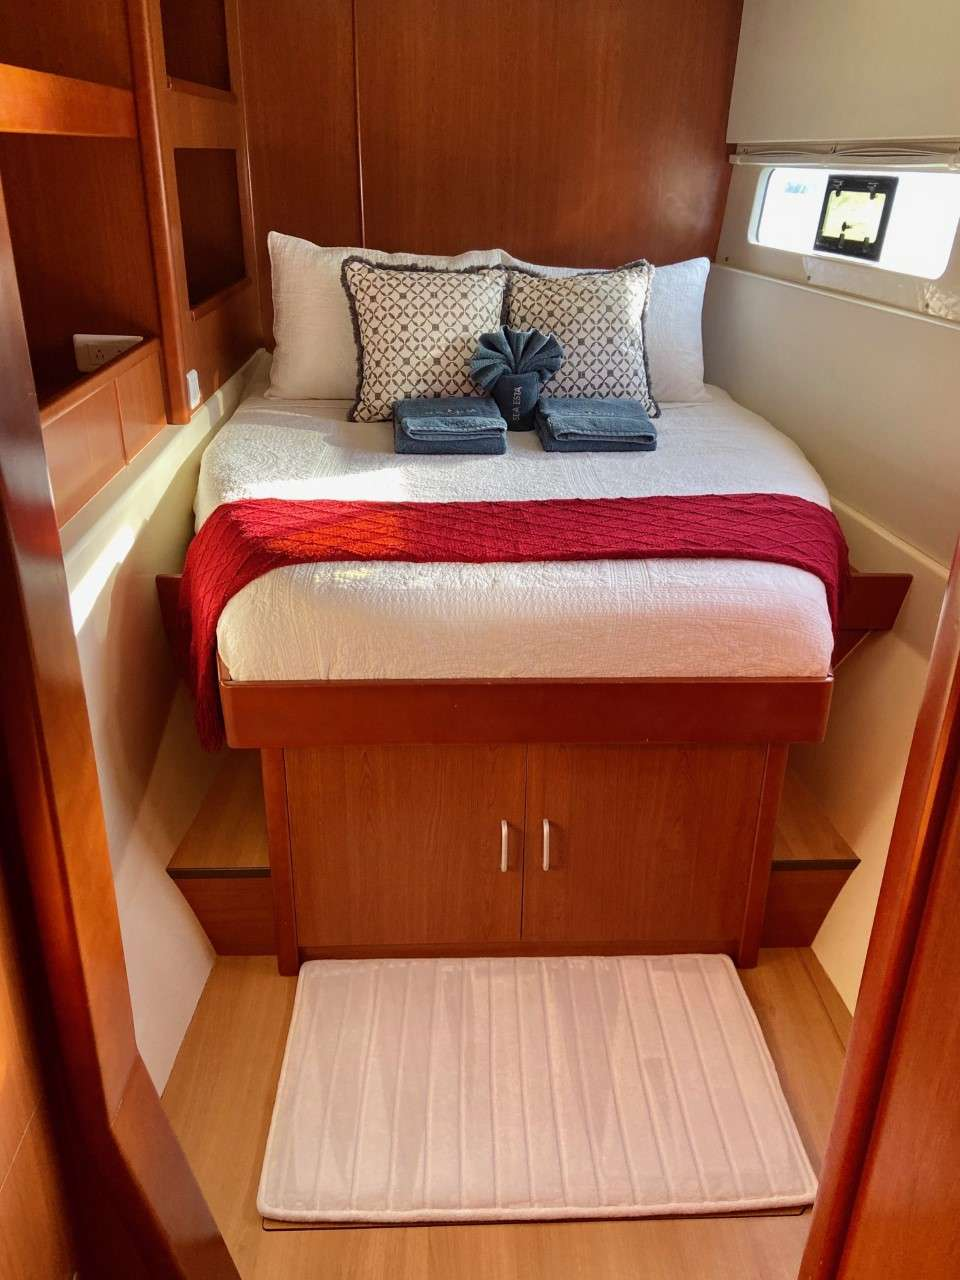 Lower level guest stateroom with opening hatch and port light for ocean breezes.